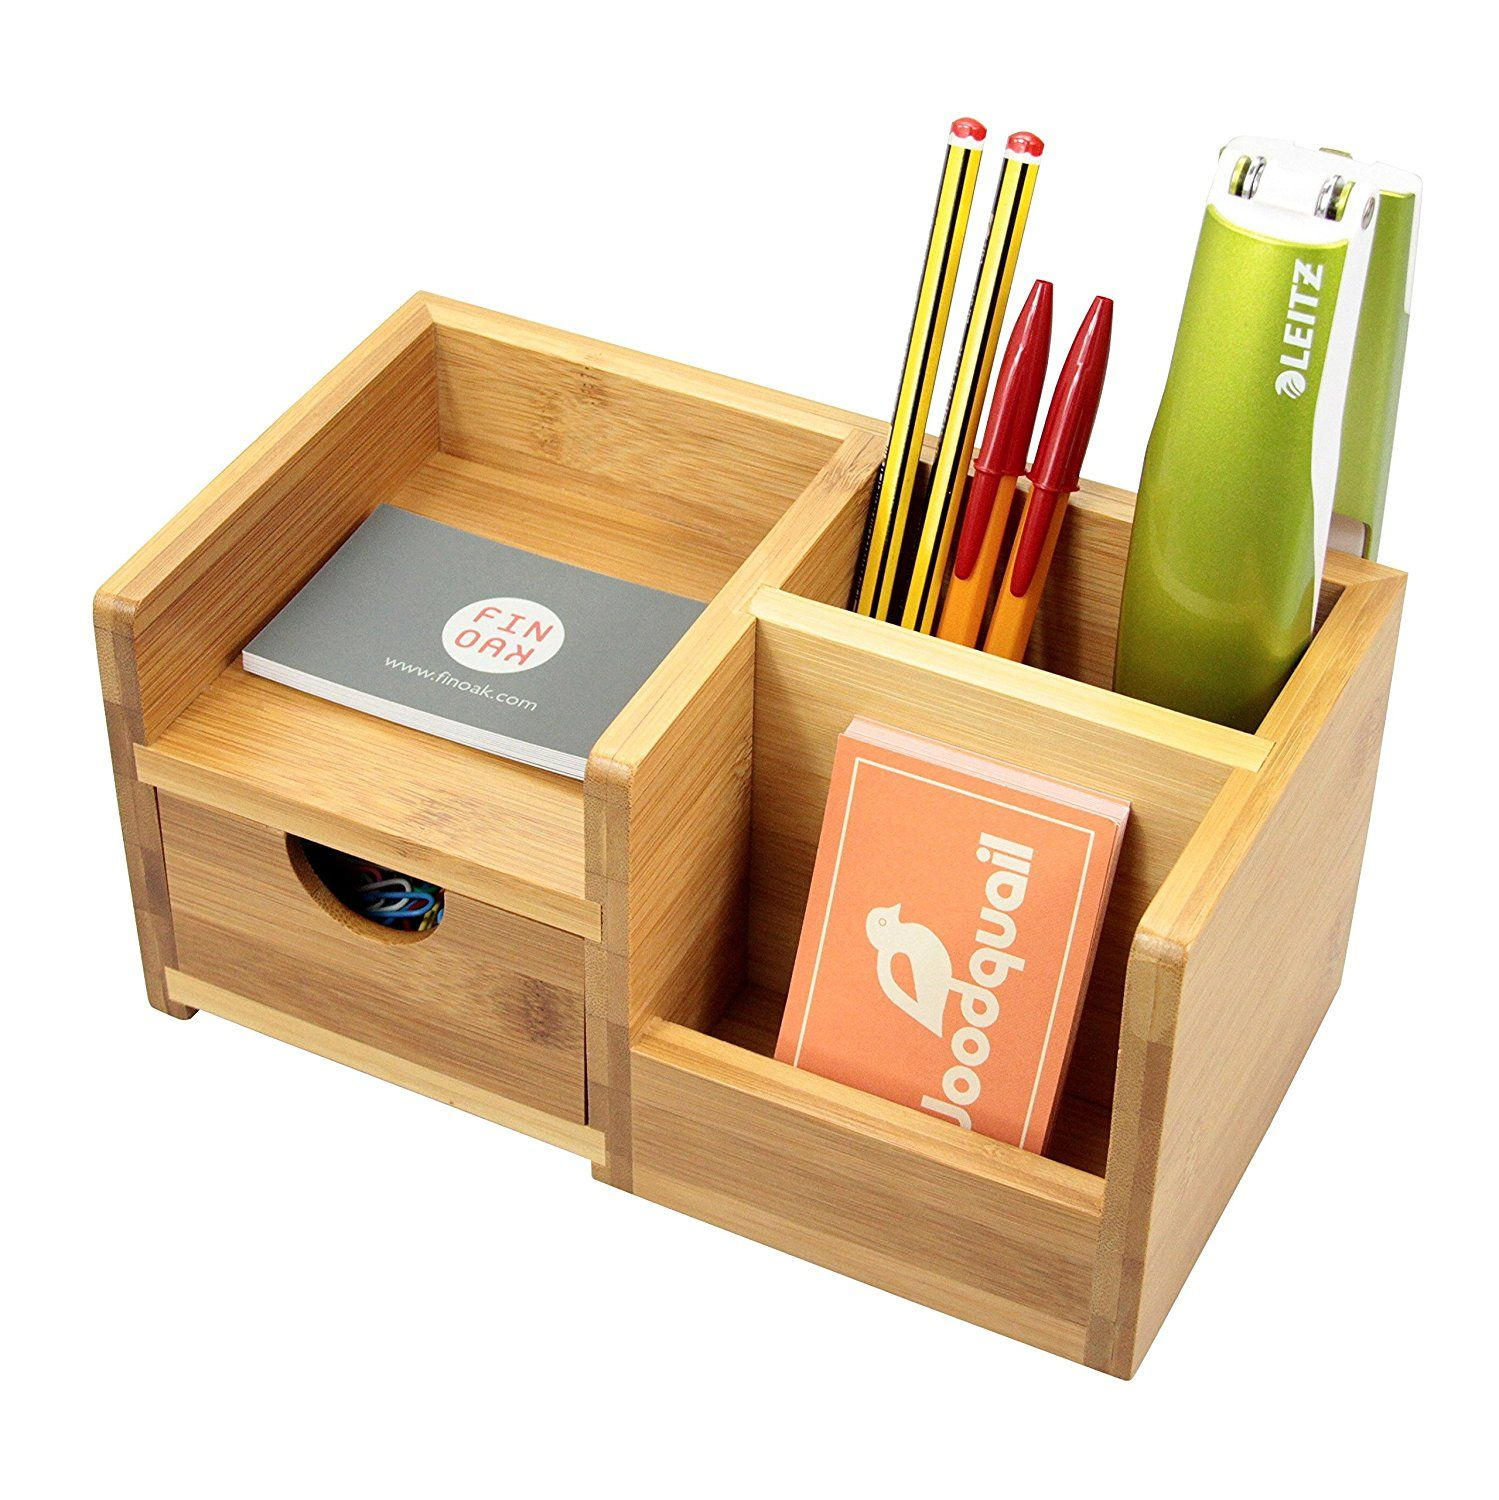 Desk Organiser, Pen Holder and Drawer Desk Tidy of 4 Compartments. Made of  Natural